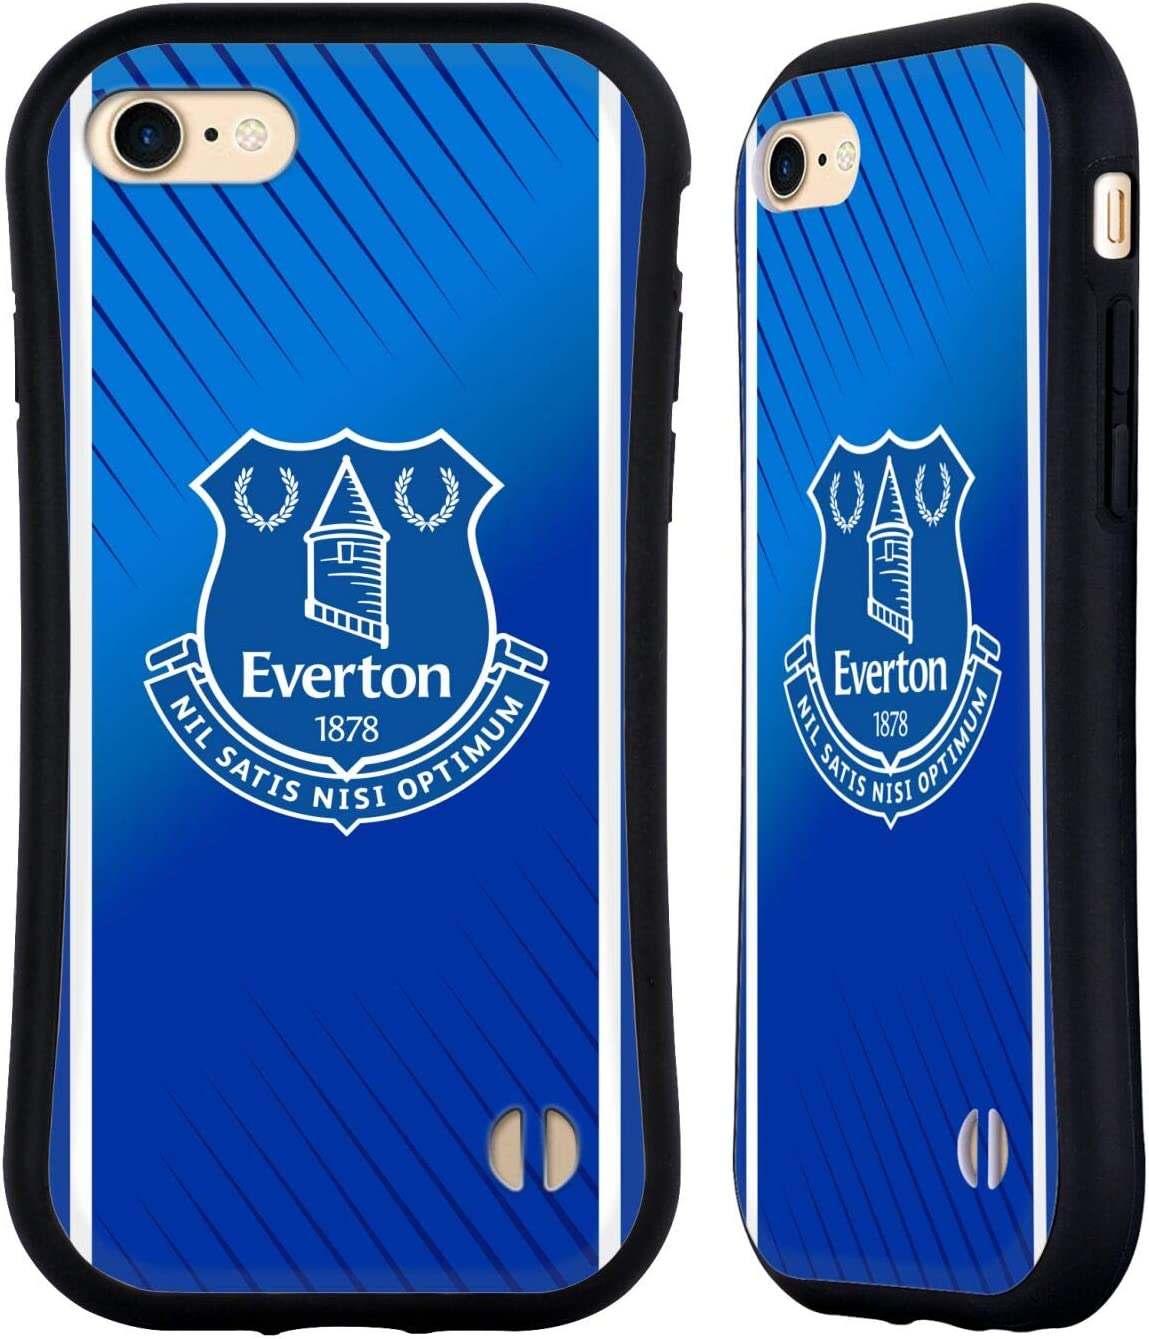 Head Case Designs Officially Licensed Everton Football Club Home 2020/21 Kit Hybrid Case Compatible with Apple iPhone 7 / iPhone 8 / iPhone SE 2020